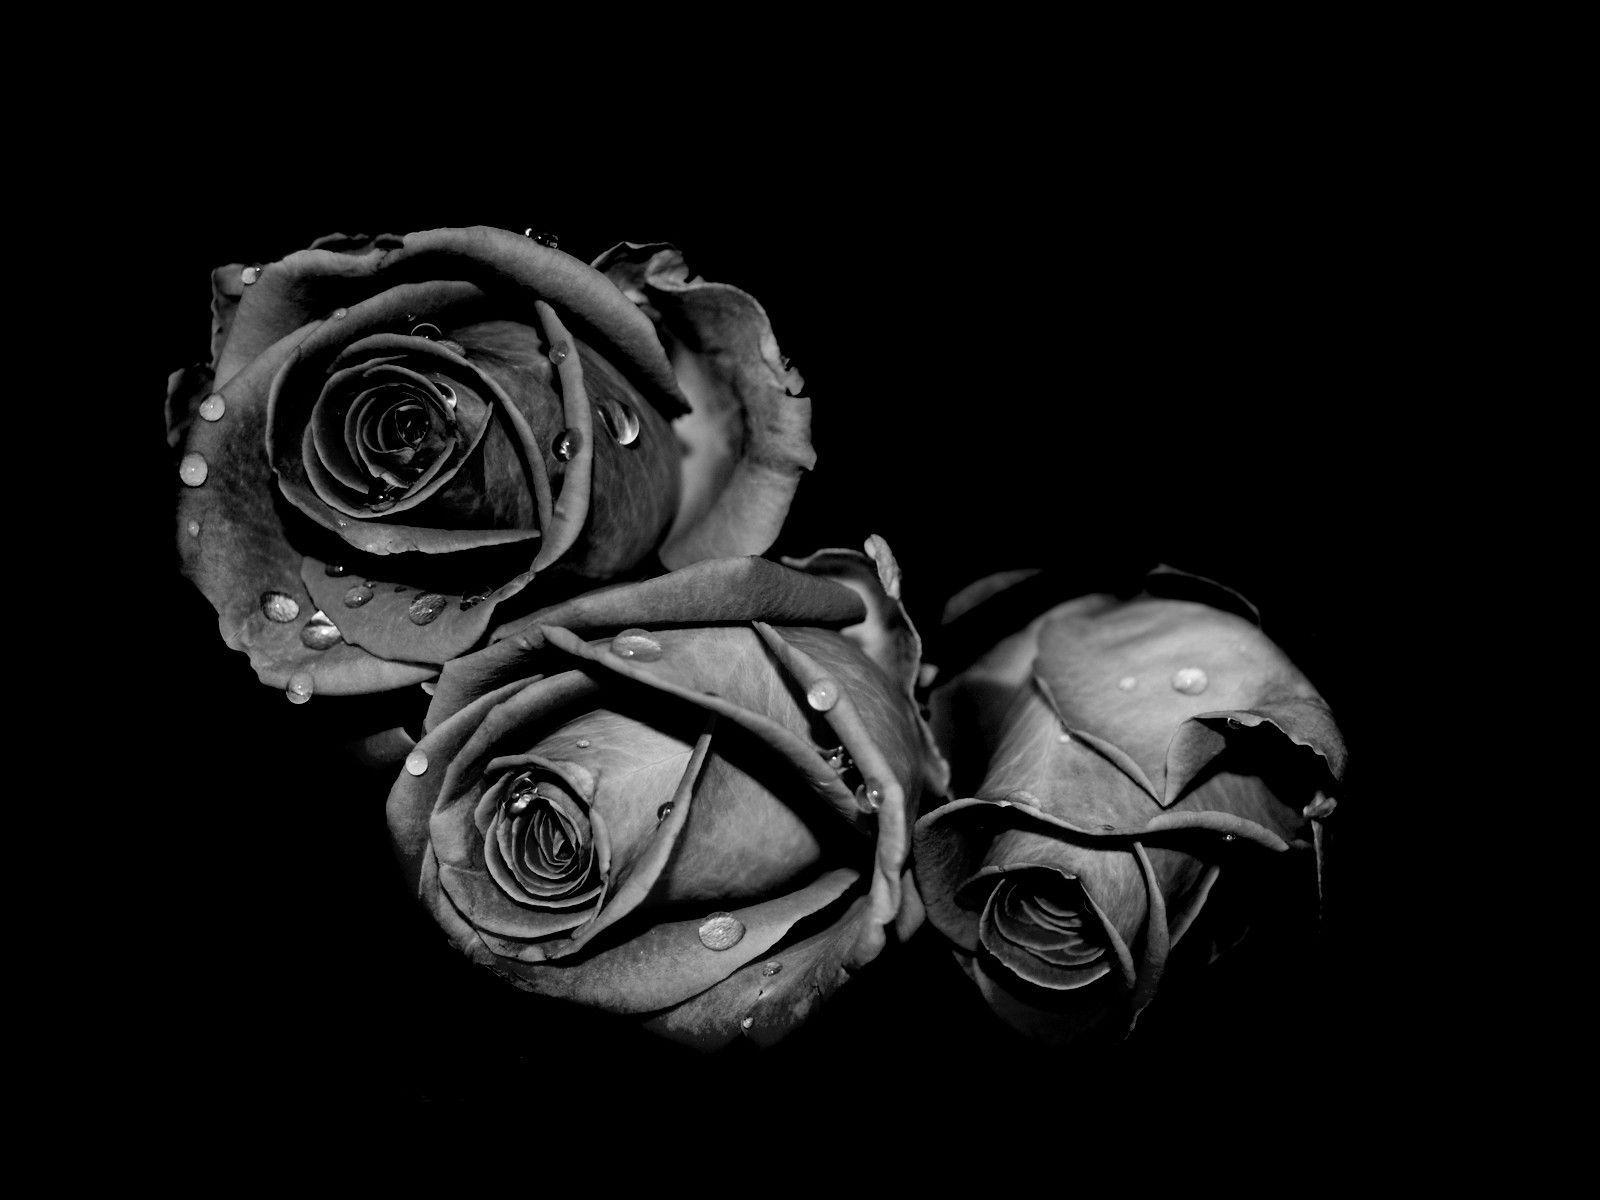 Wallpapers For > Single Black Rose Wallpapers